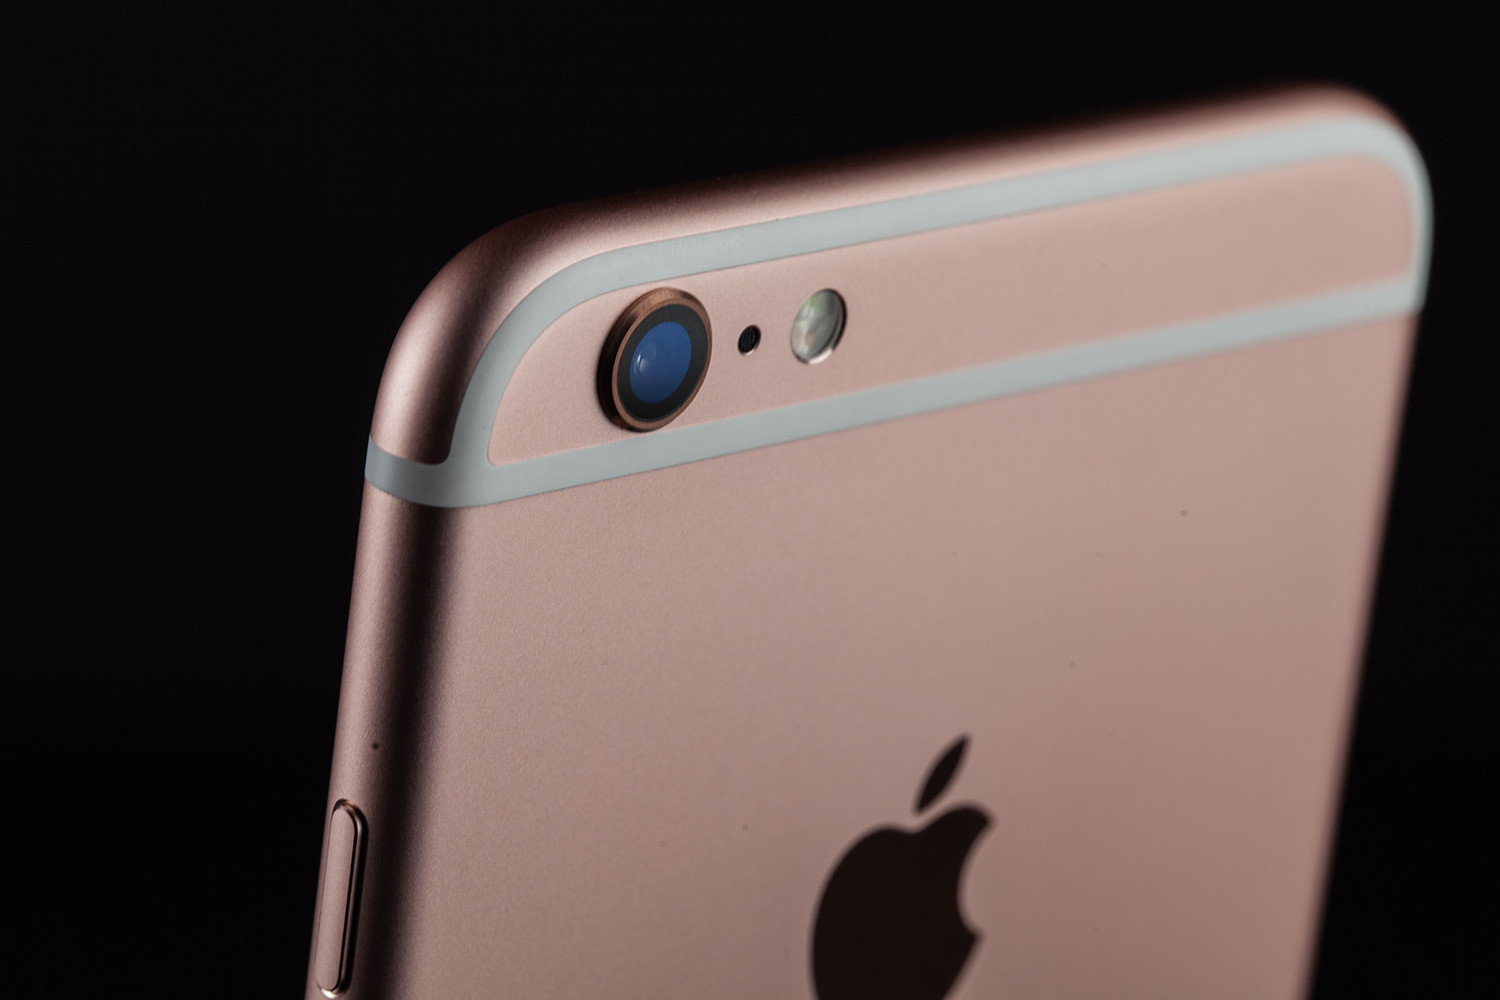 iPhone 7 rumors and news leaks